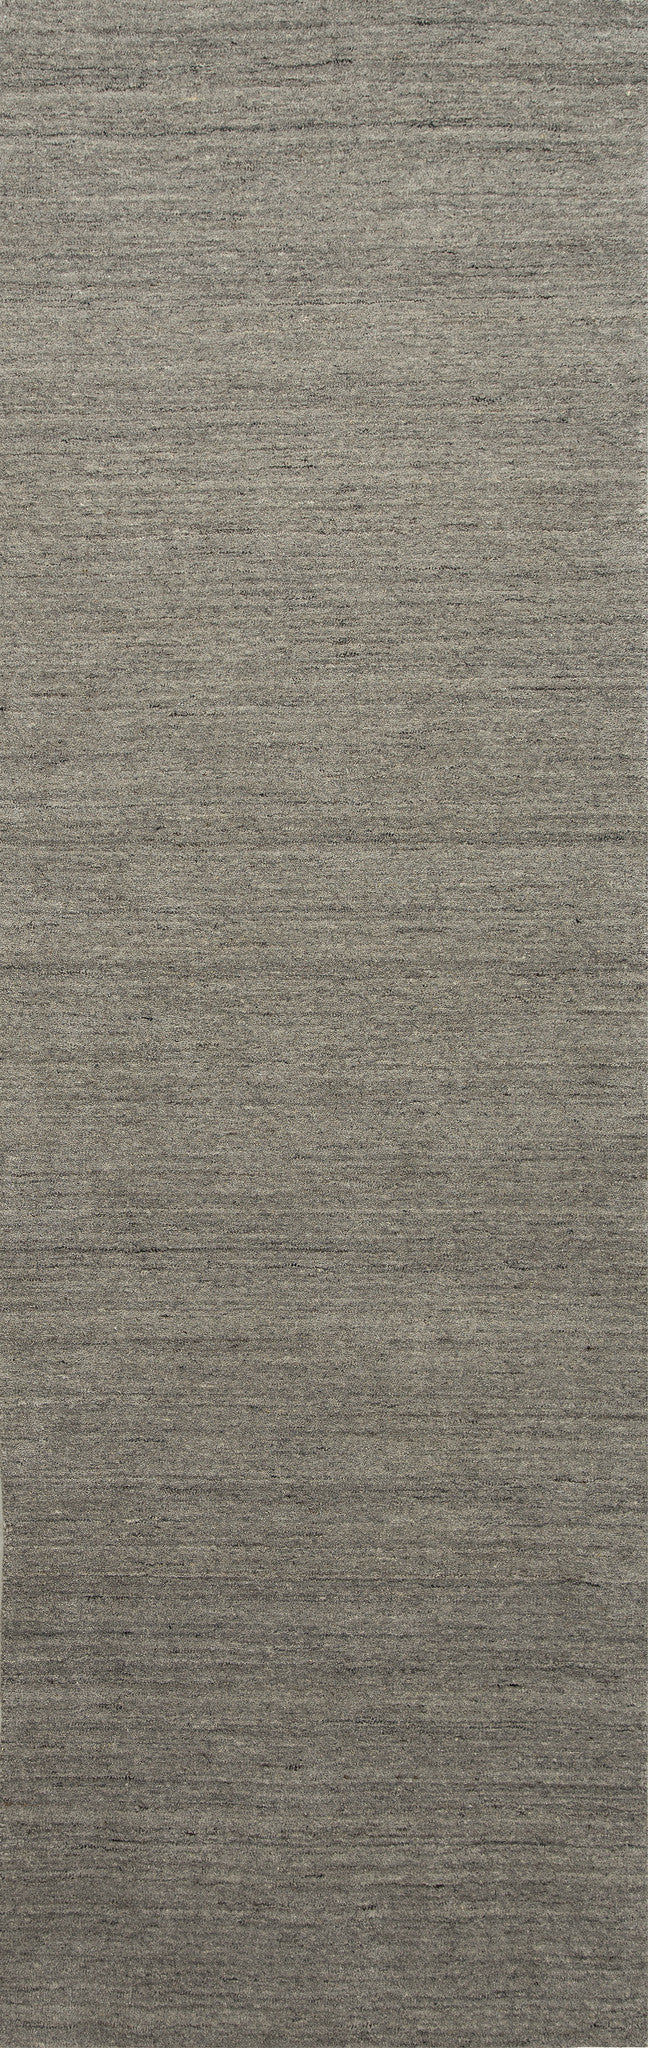 Jaipur Rugs Handloom Solid Pattern Gray/Ivory Wool Area Rug